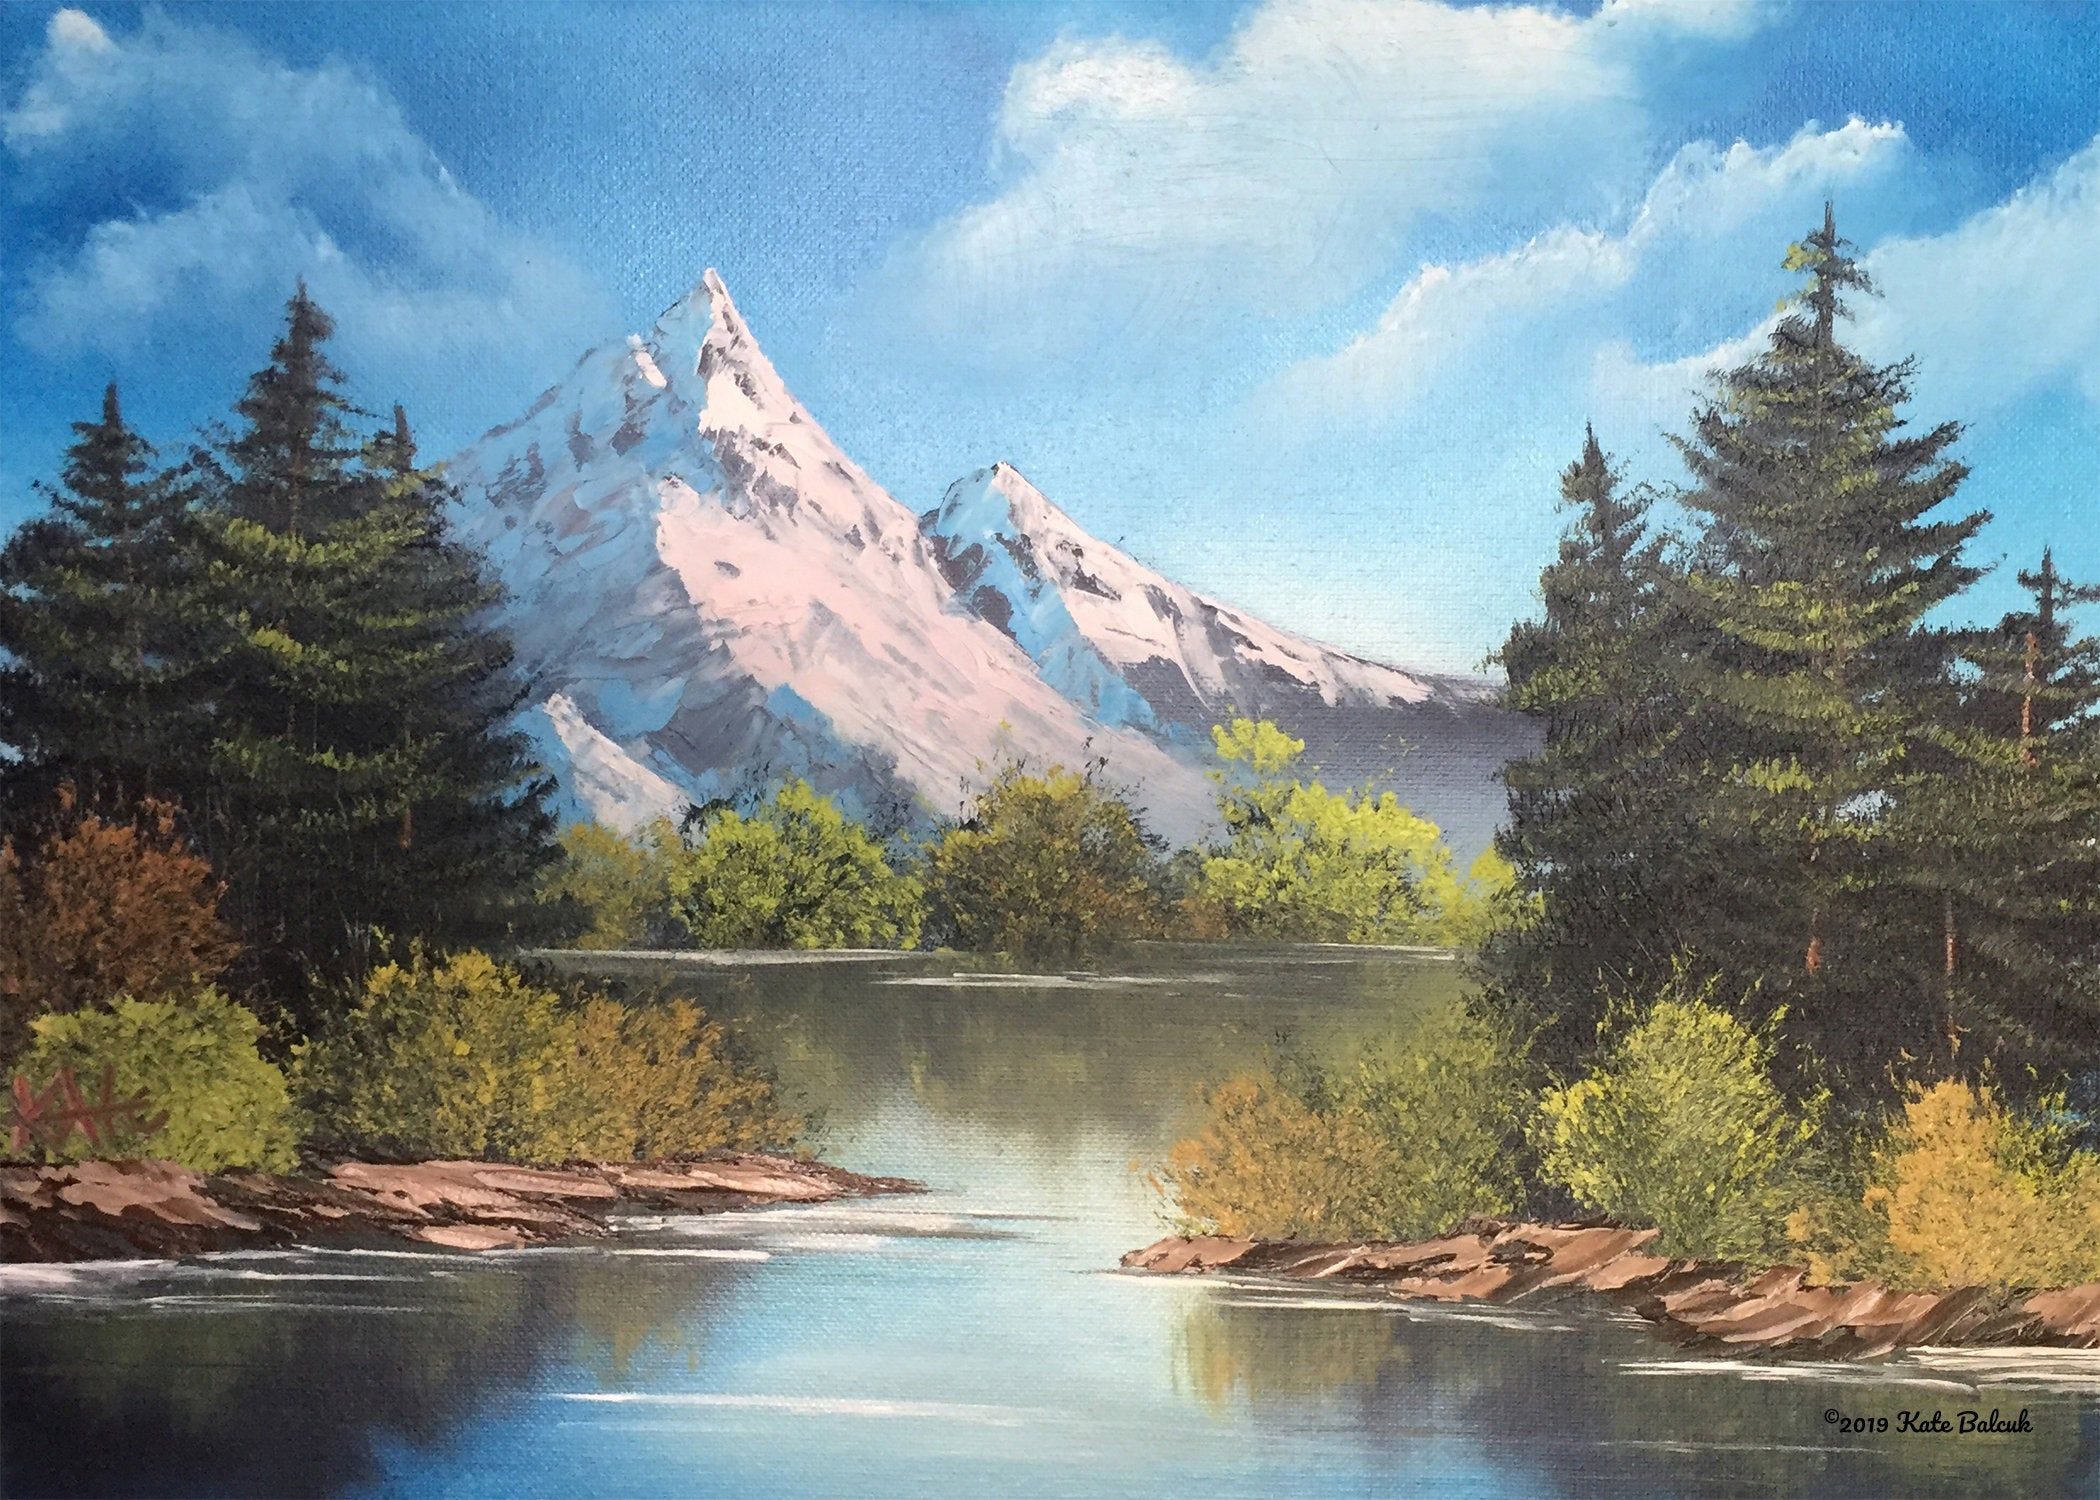 Scenic Snowy Mountain Lake Pine Trees Natural Landscape Reflections In Water Nature Lovers 8 X 10 Inc Snowy Mountains Mountain Paintings Water Reflections